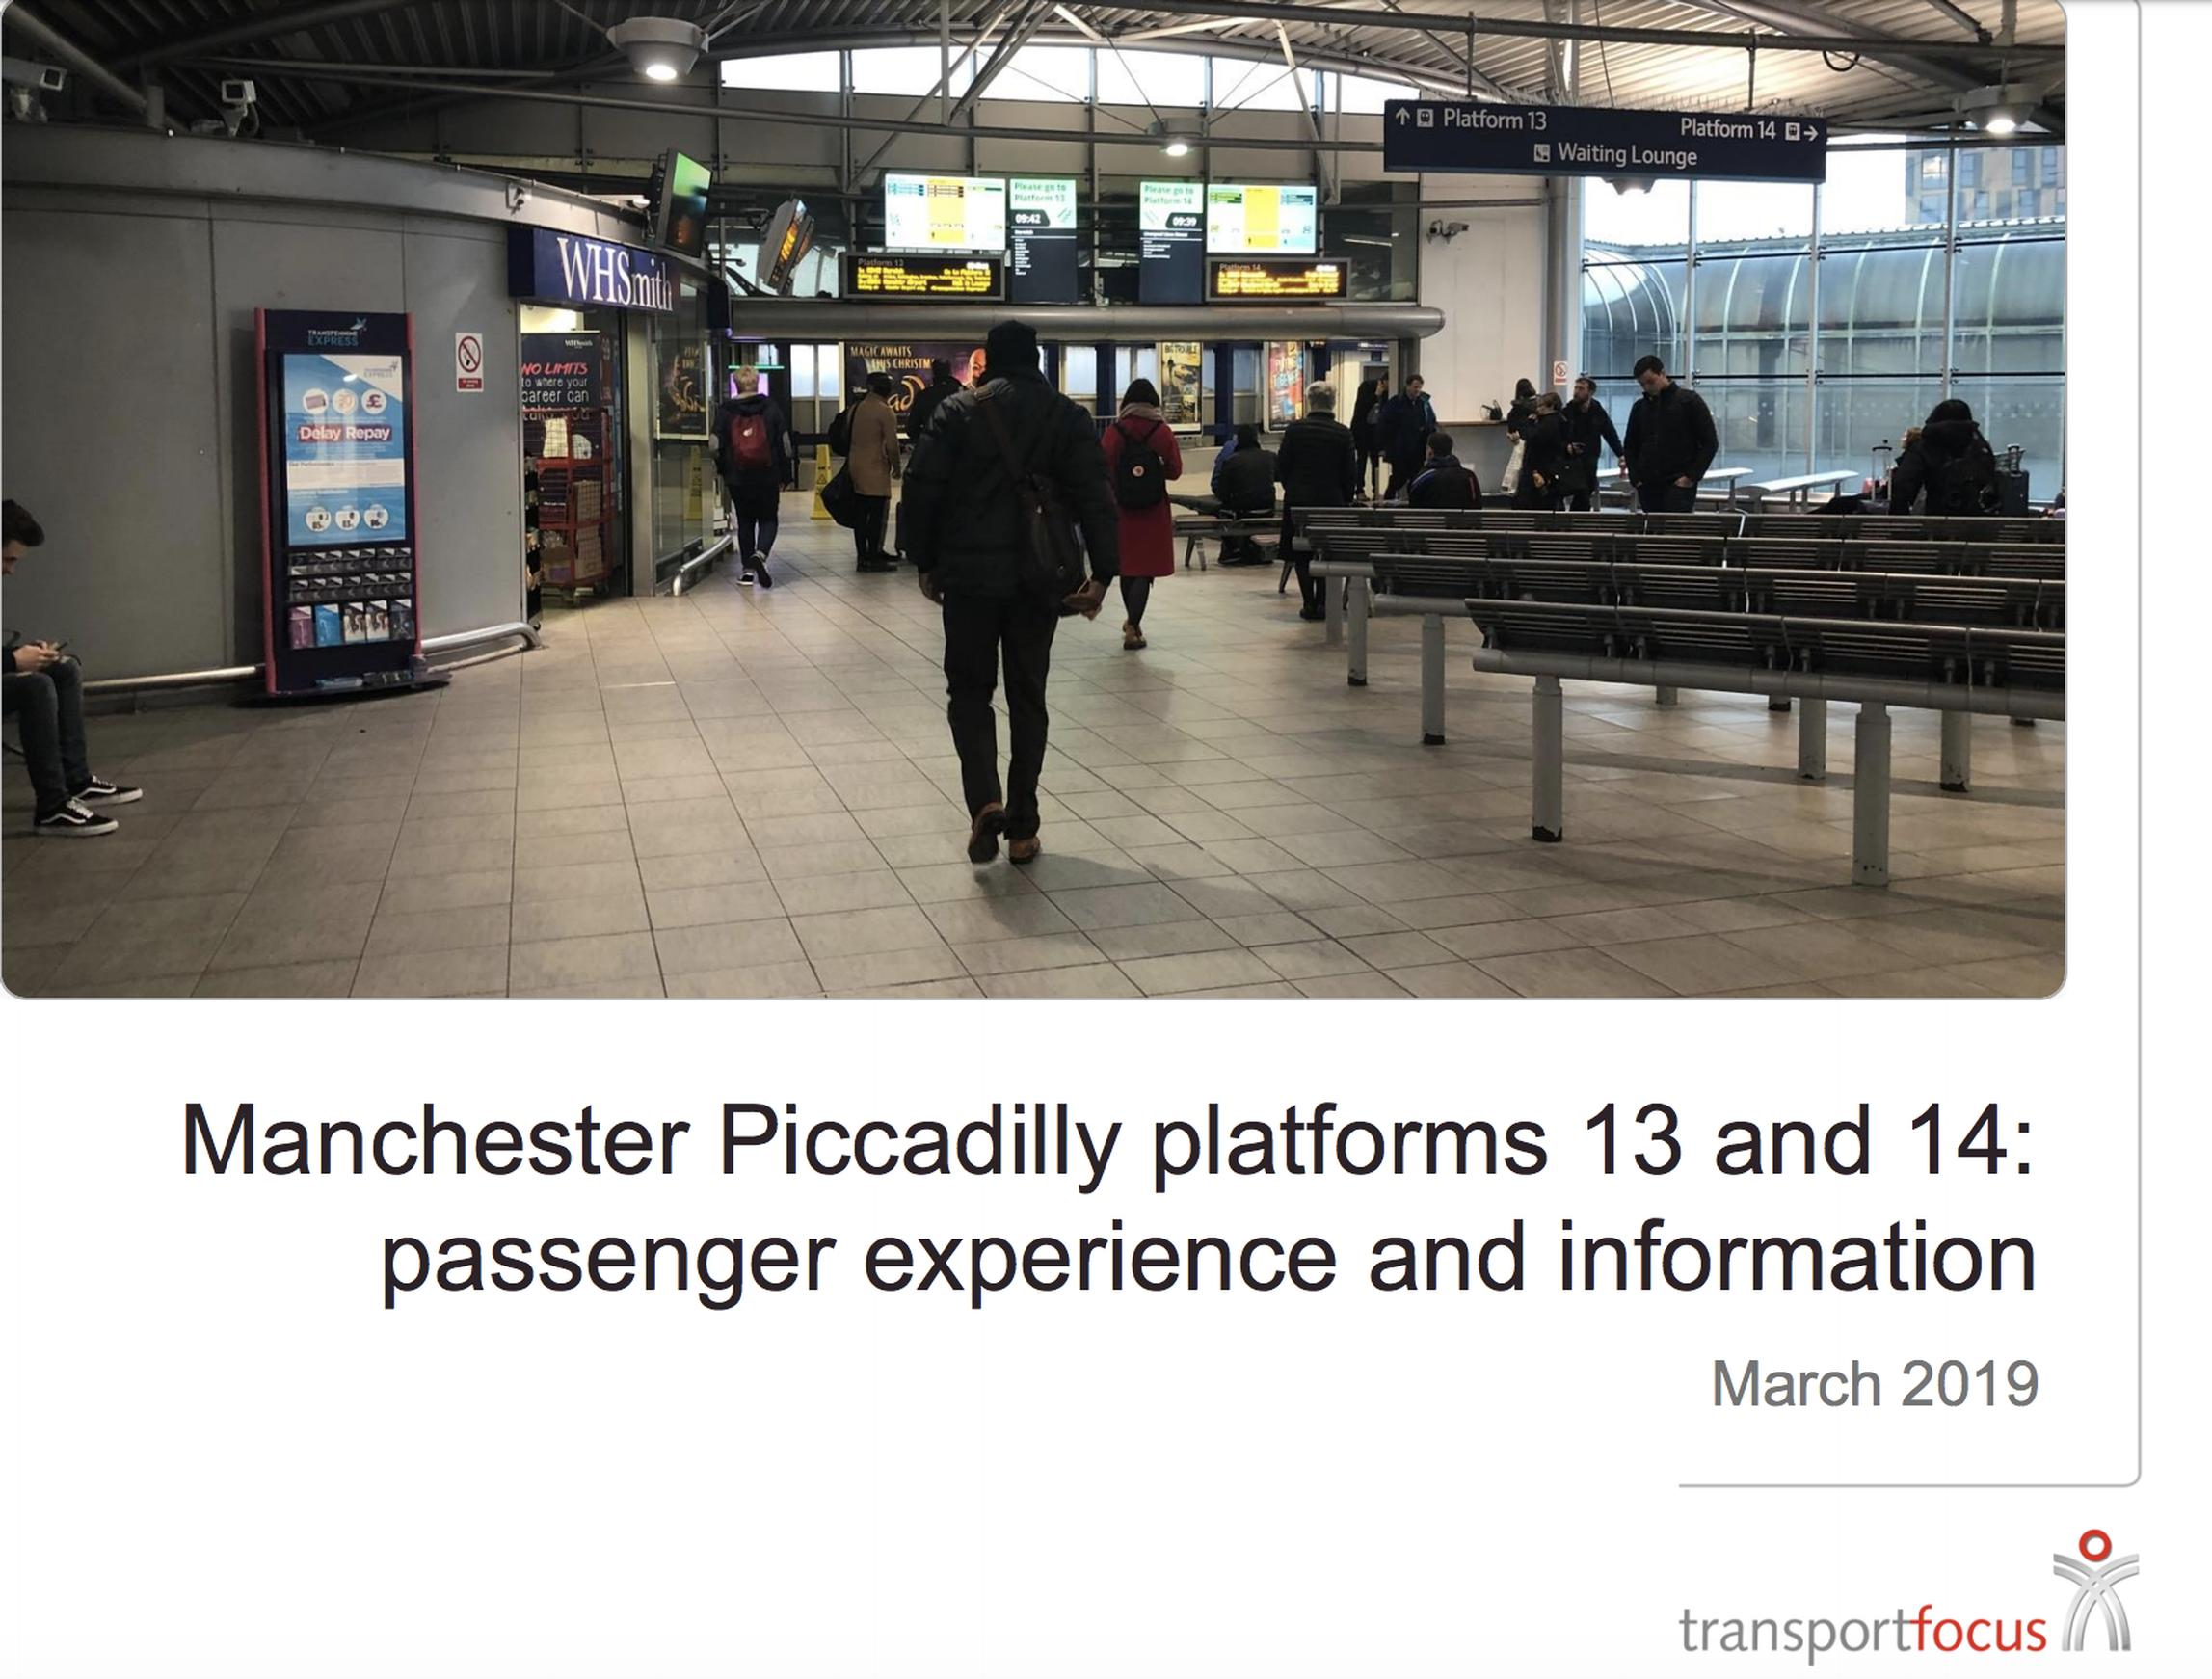 In 2019, Transport Focus undertook research to ask passengers about their experience using platforms 13 and 14 at Manchester Piccadilly station, using the feedback to help Network Rail and the train companies improve the experience for passengers